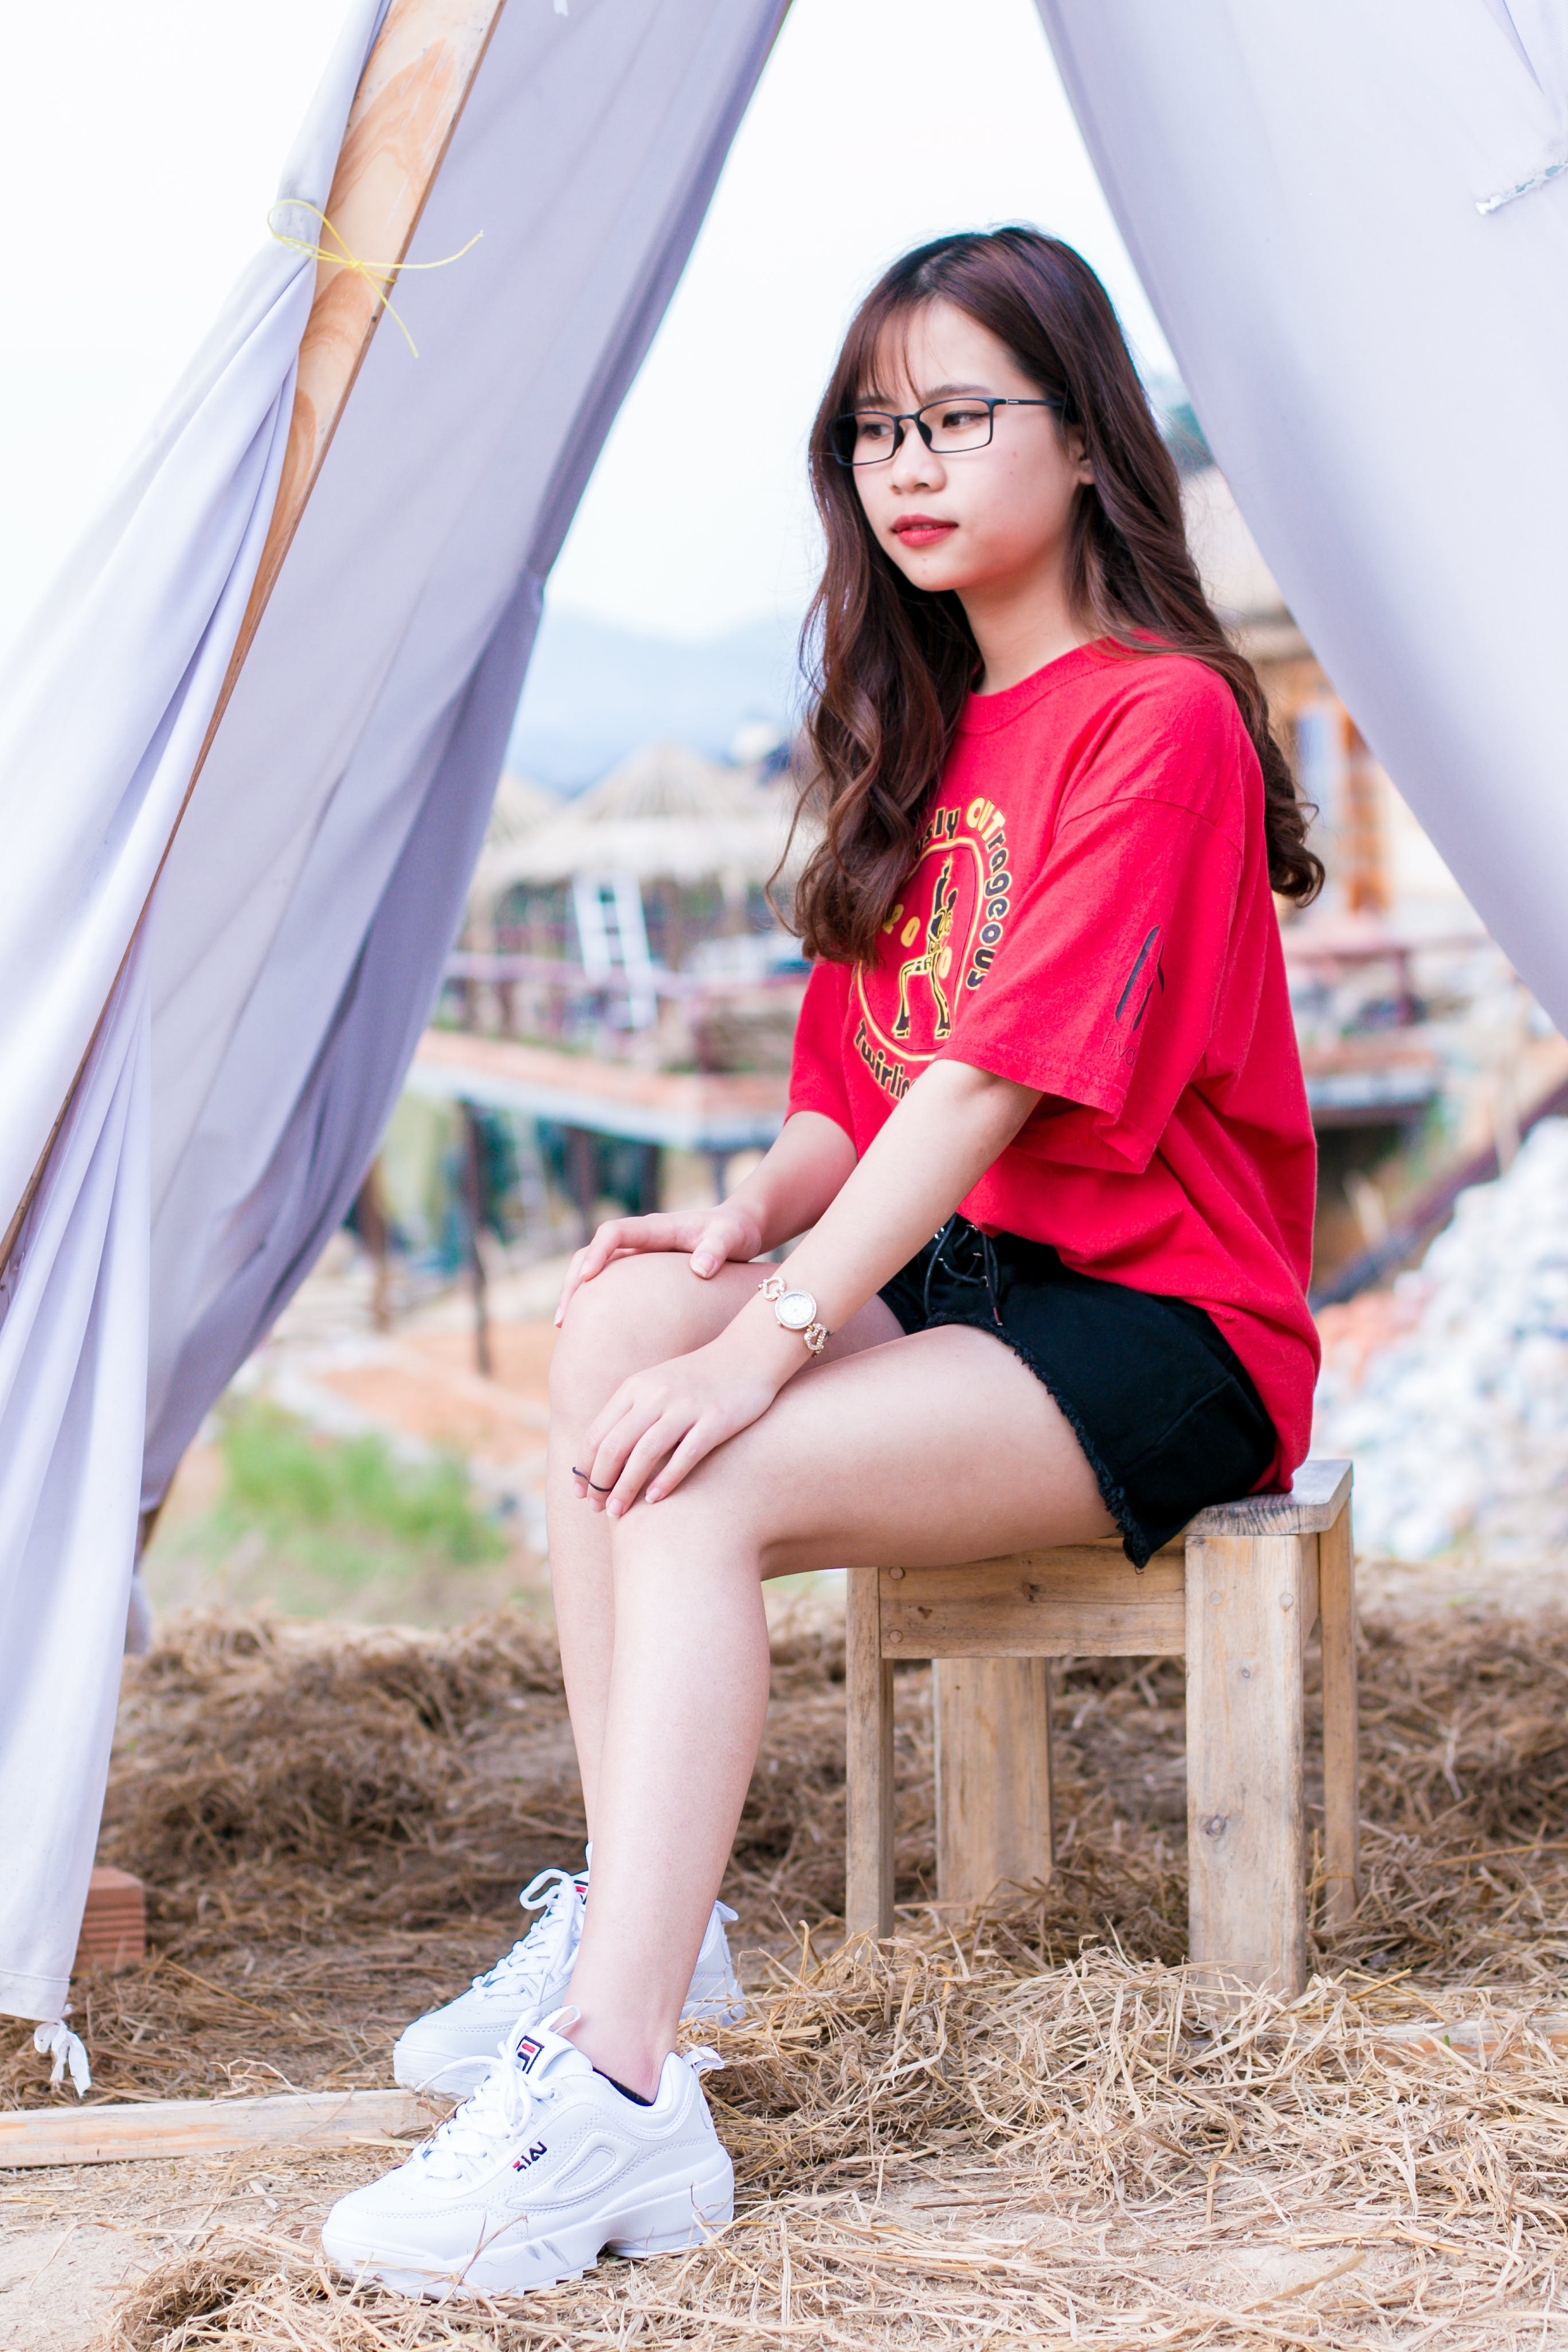 Woman in Red T-shirt and Black Denim Shorts